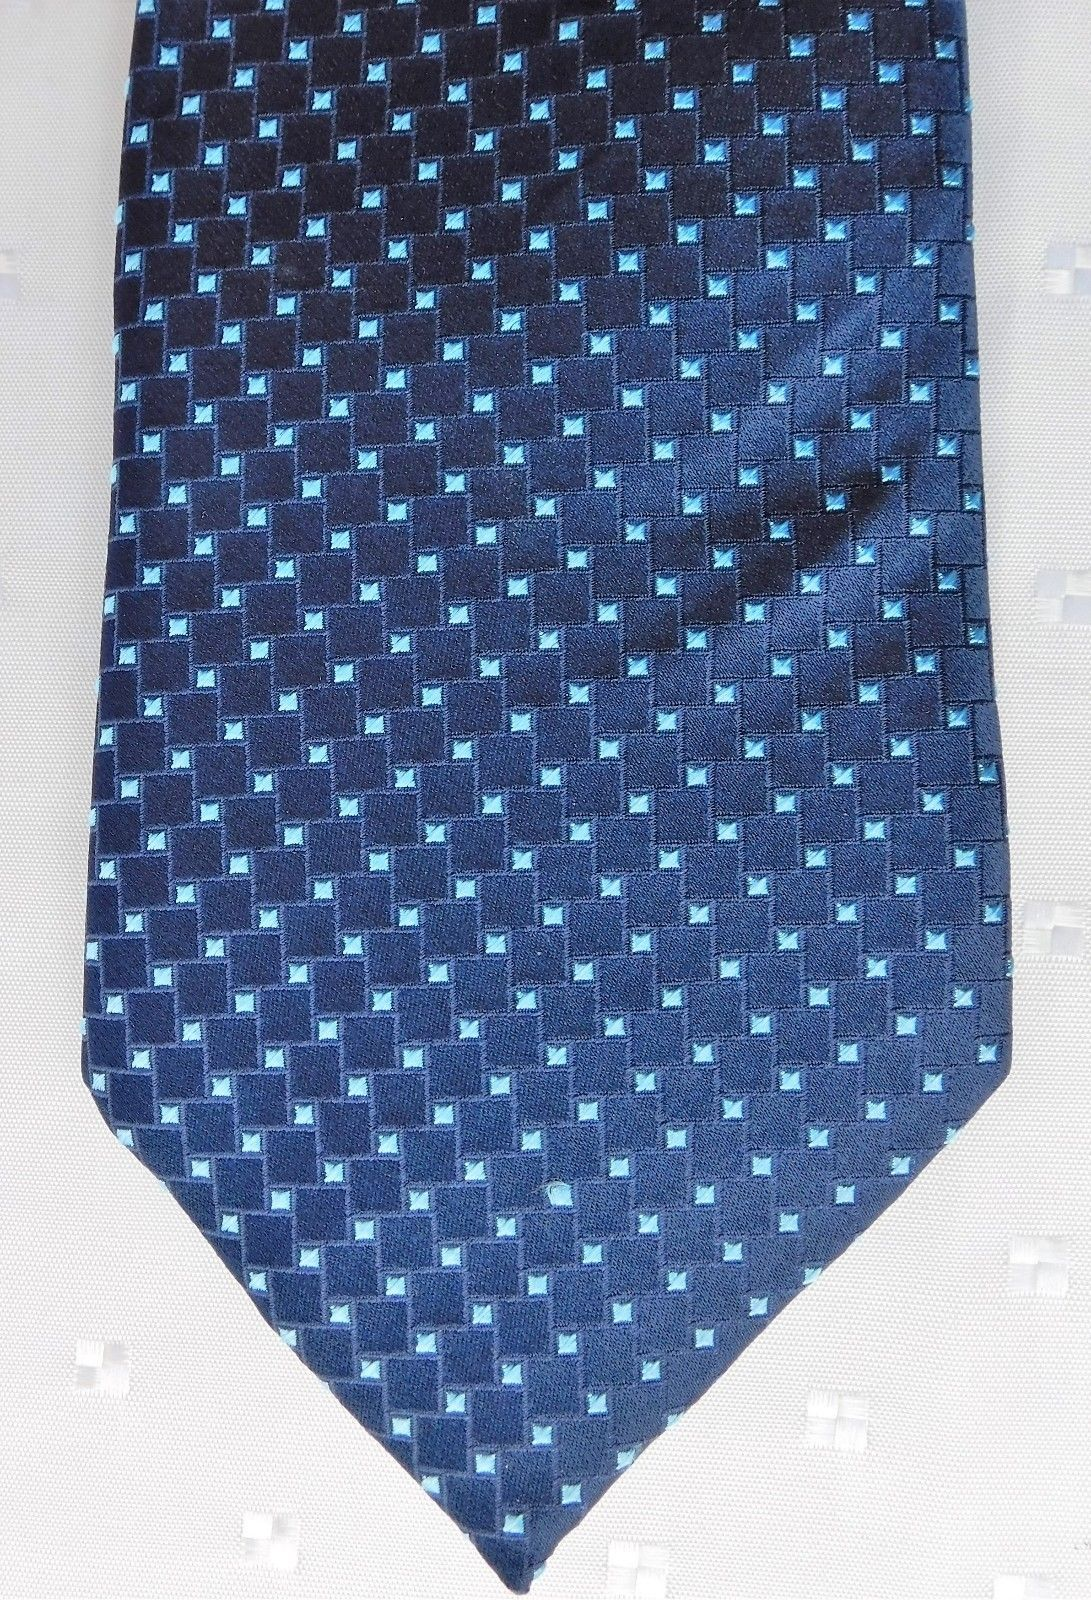 1d5d0b8f345e Mens pure silk tie T M Lewin navy blue squares turquoise stars NEW BNWT